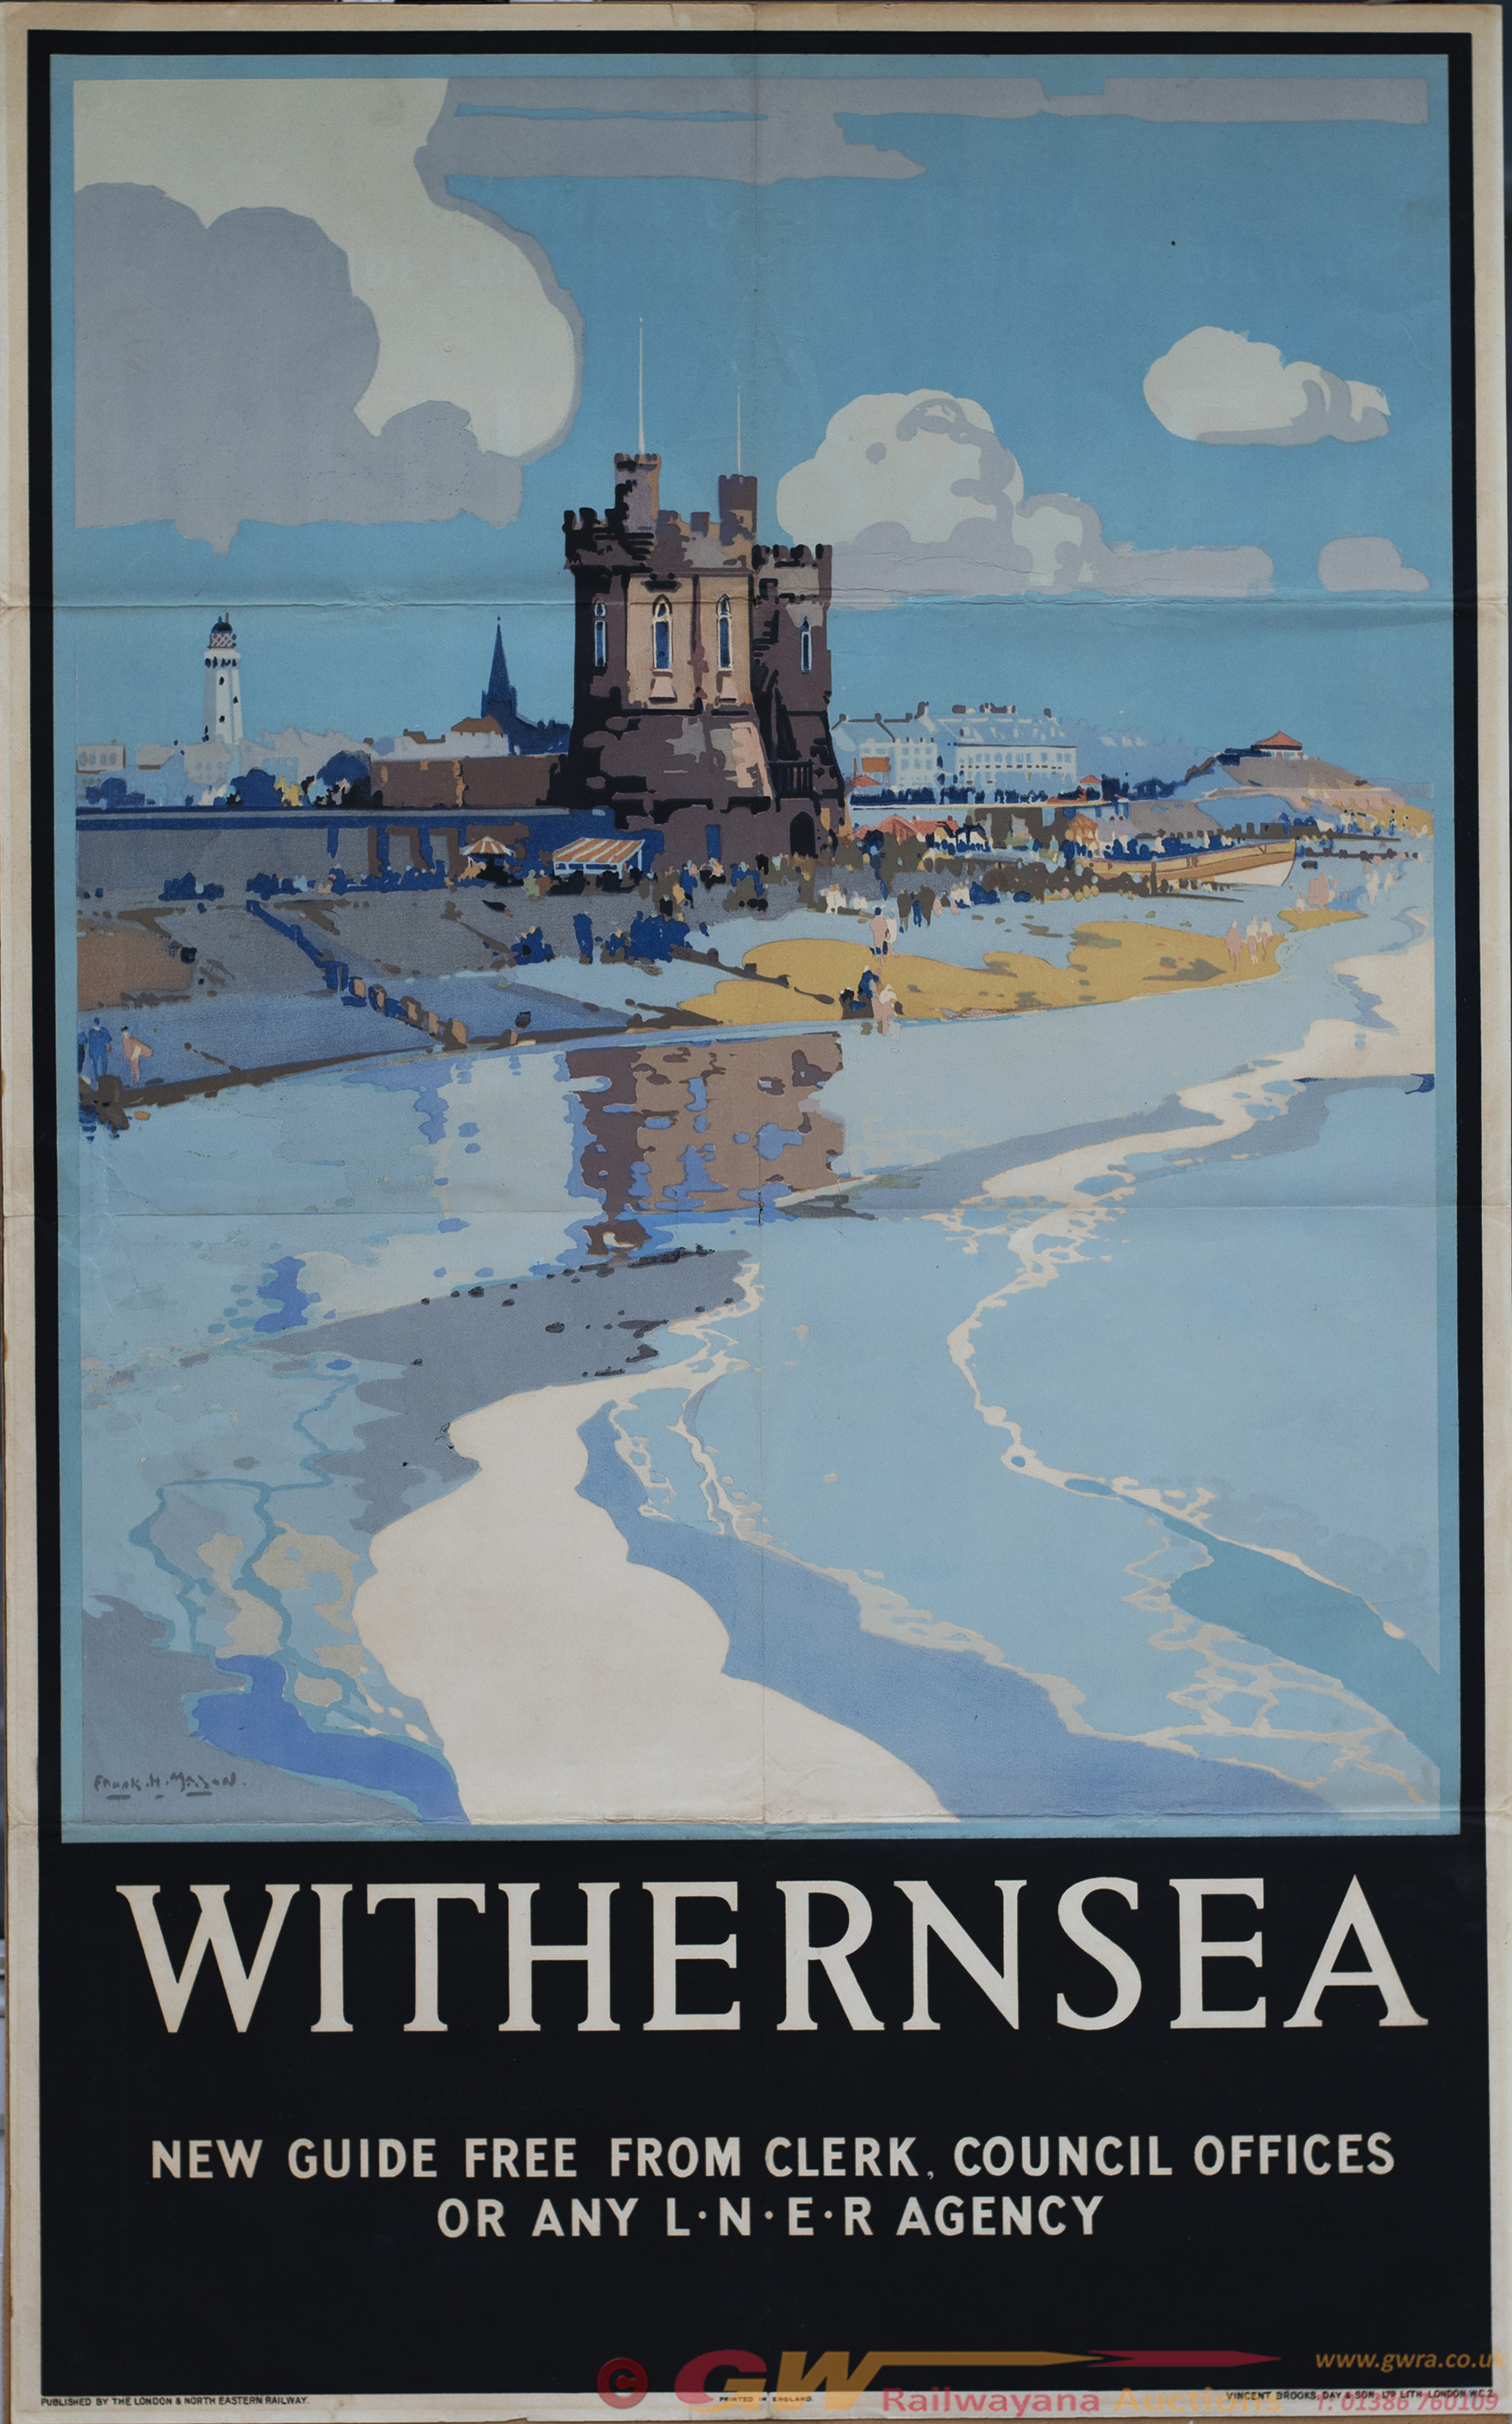 Poster LNER WITHERNSEA By Frank Mason. Double